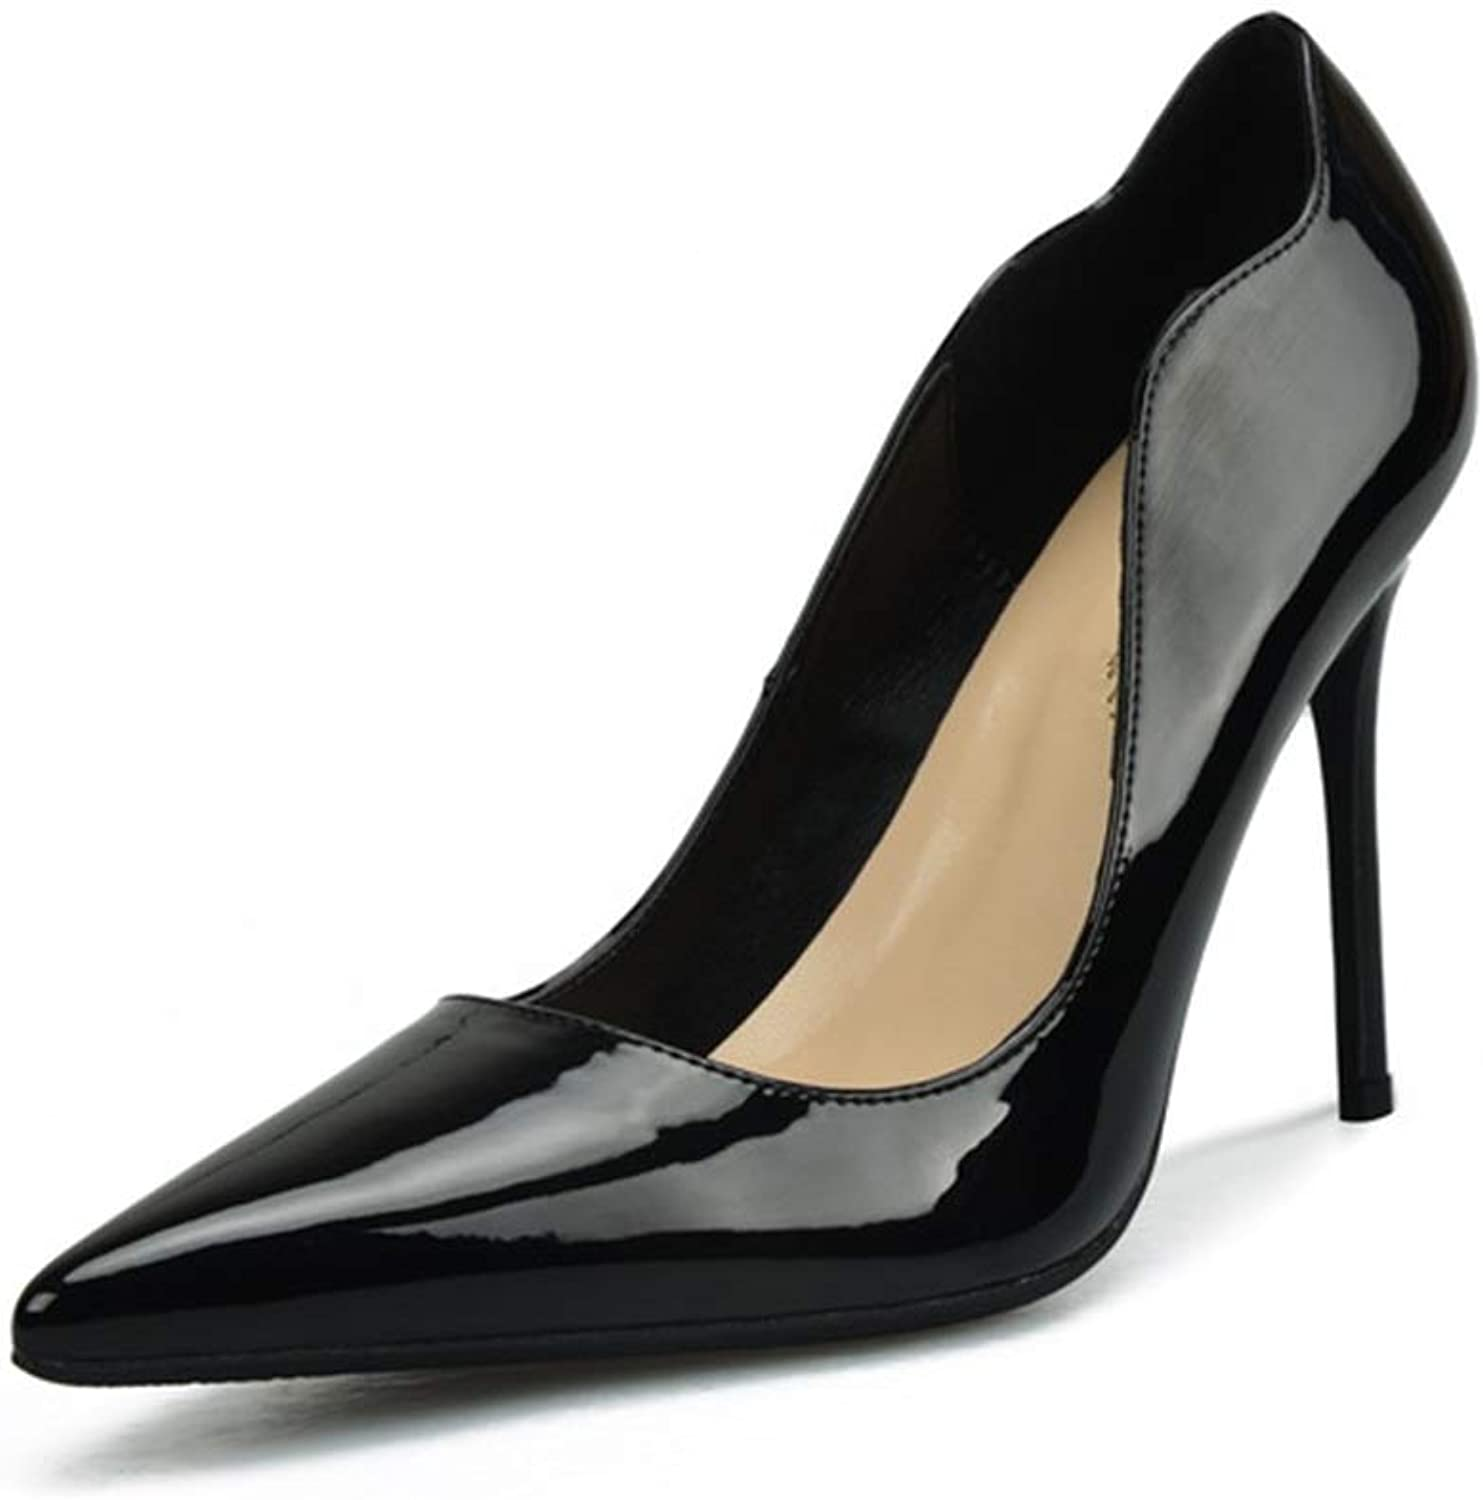 ZerenQ D'Orsay Pumps for Women High Stiletto Heels Patent PU Leather Sexy Pointed Toe Classic Dress shoes for Ladies Durable (color   Black 8 cm Heel, Size   32 EU)